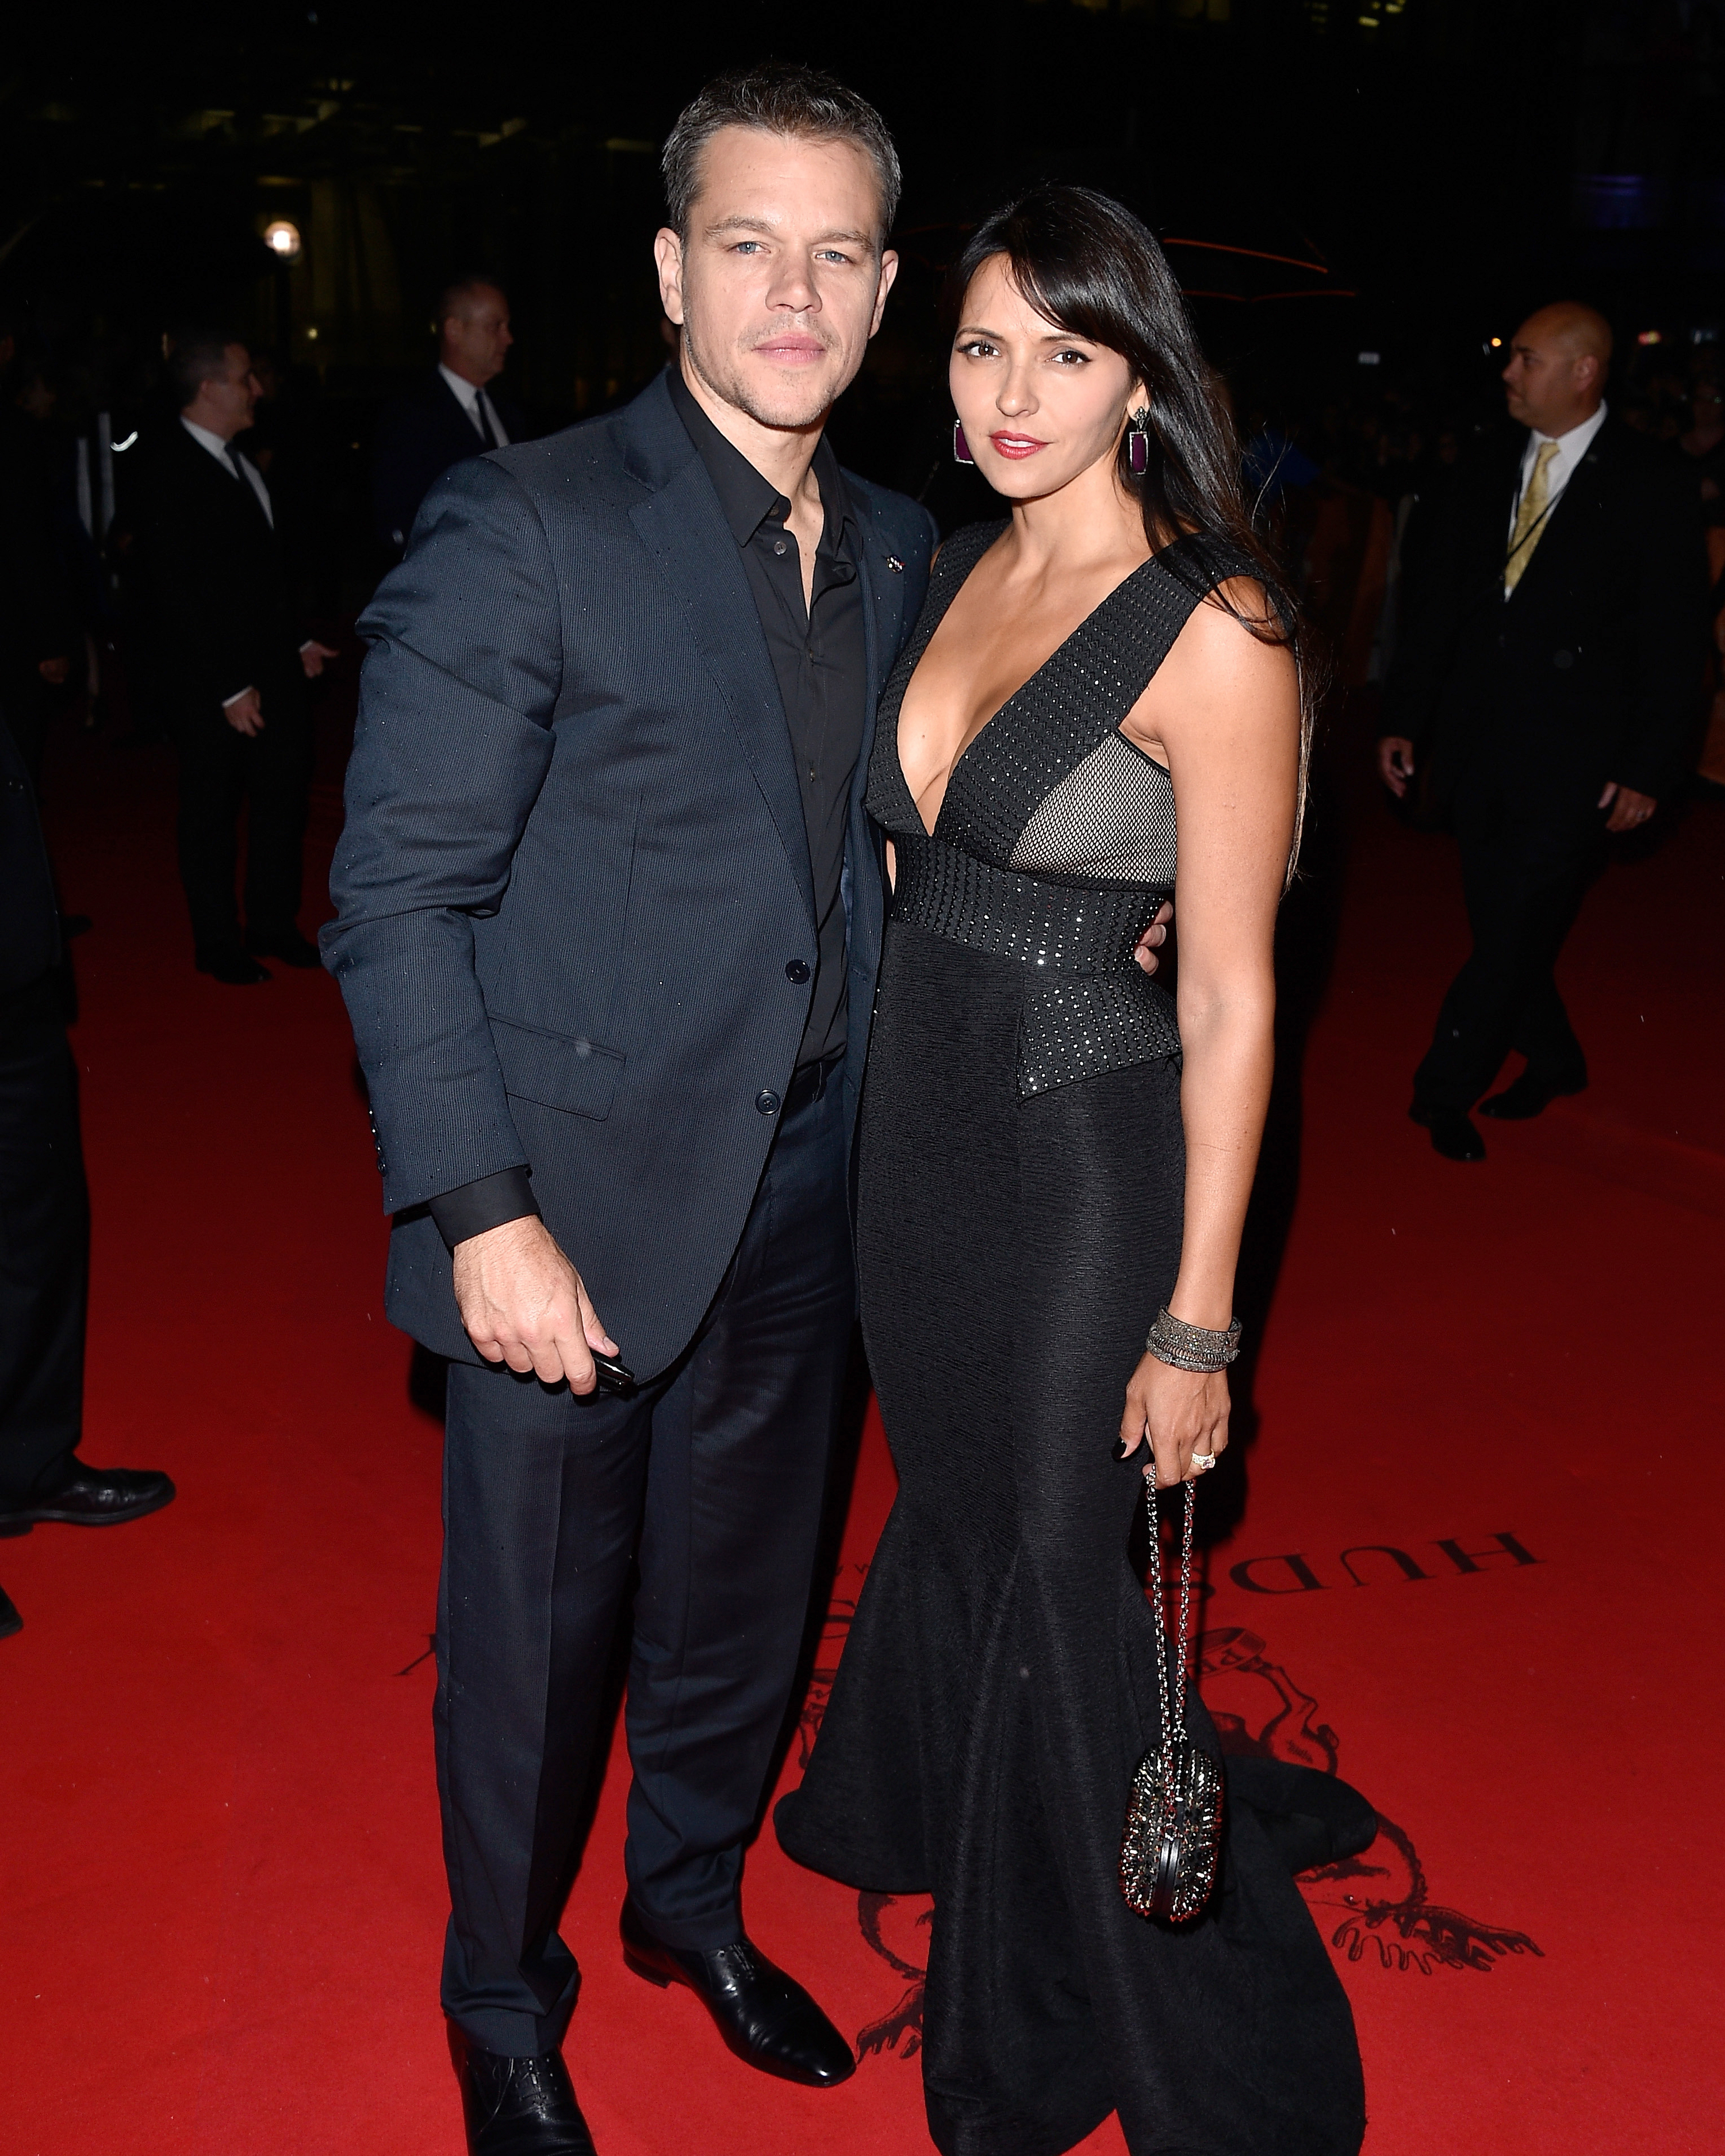 celebrity-relationship-advice-matt-damon-luciana-barroso-1215.jpg